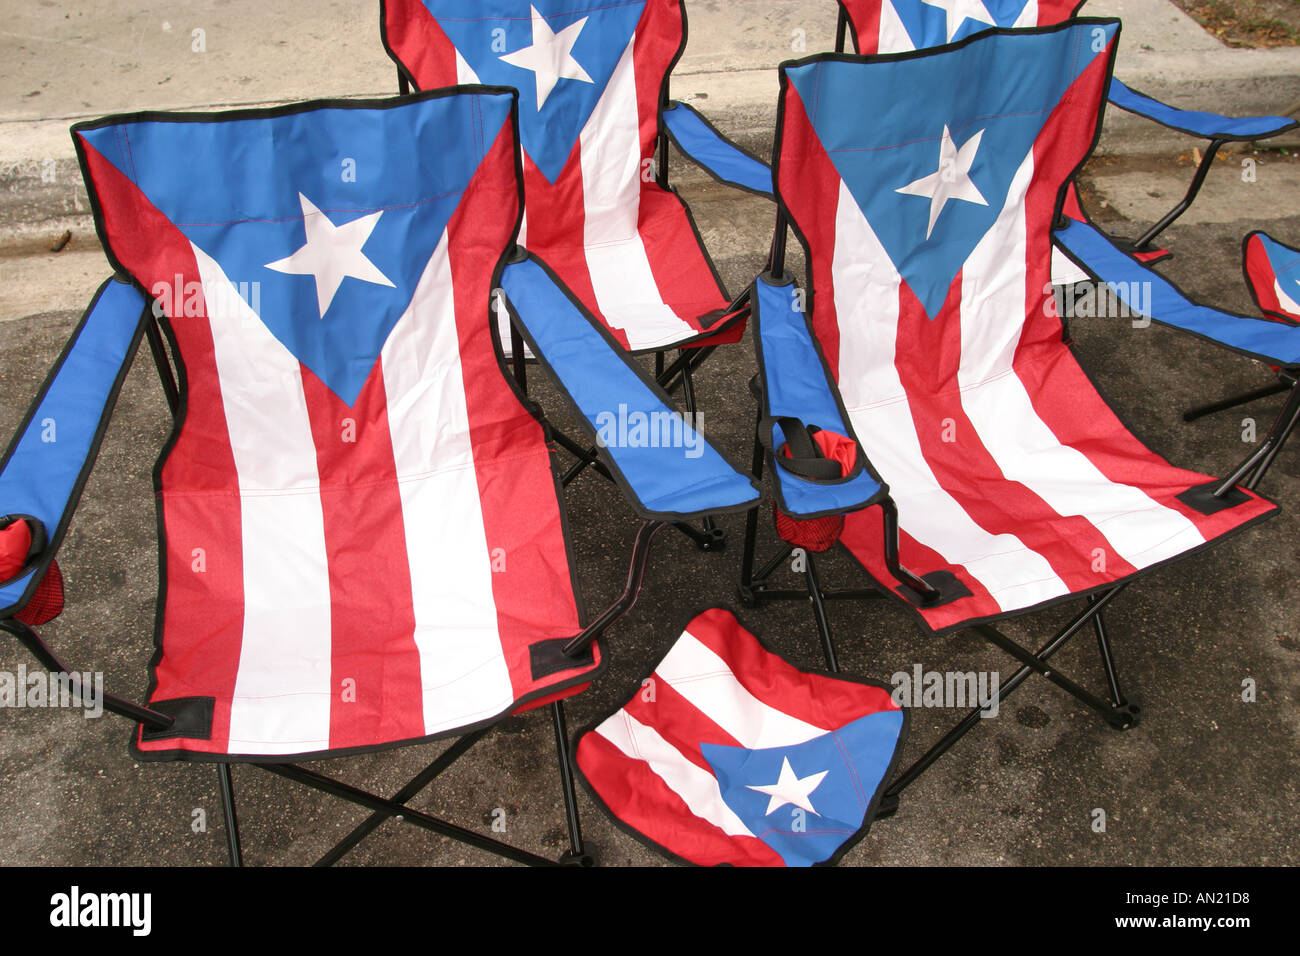 festival folding chair coalesse kart miami florida little havana calle ocho cuban fair chairs puerto rico flag theme